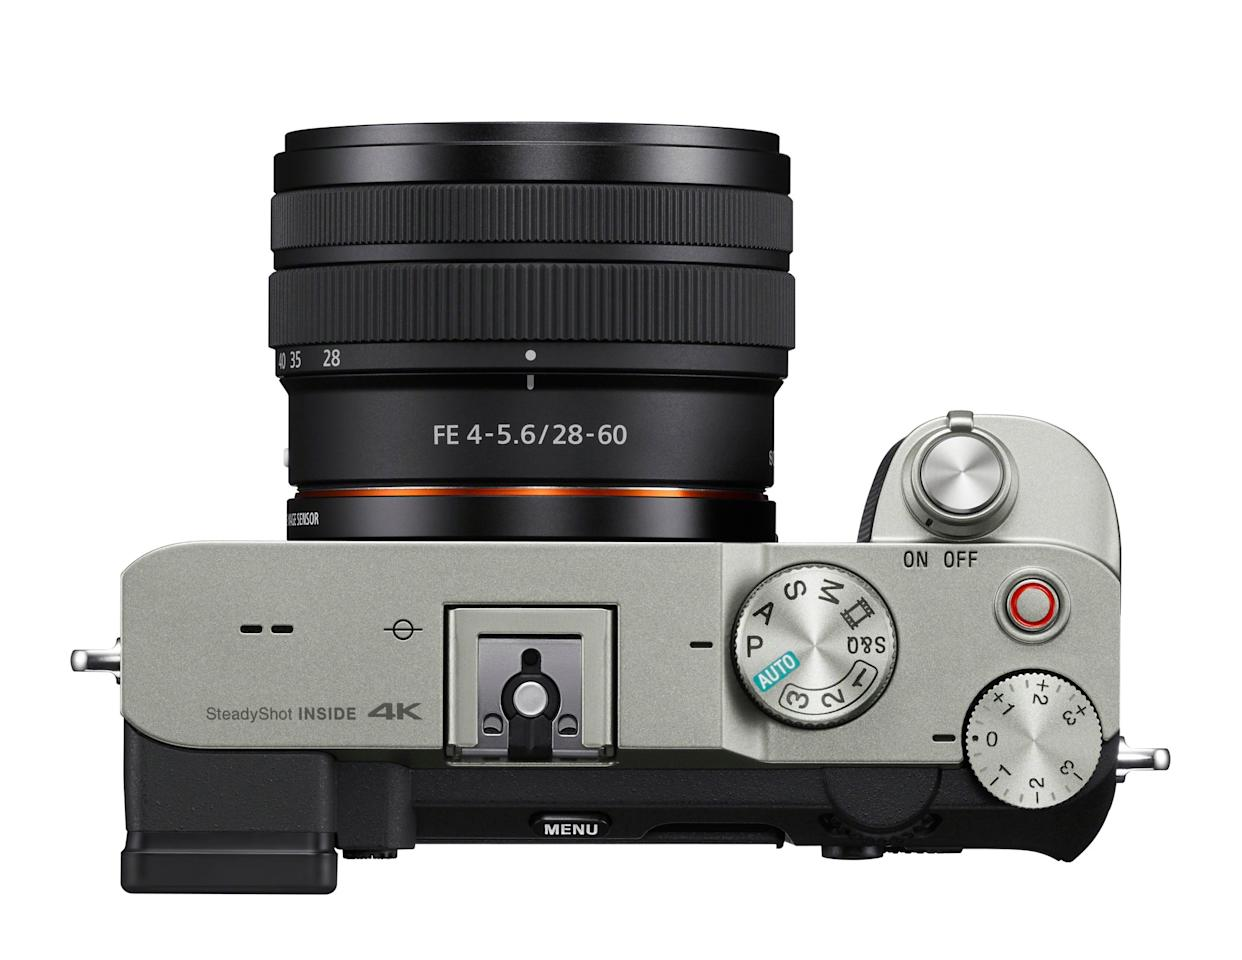 Sony A7C full-frame mirrorless camera with a new compact body